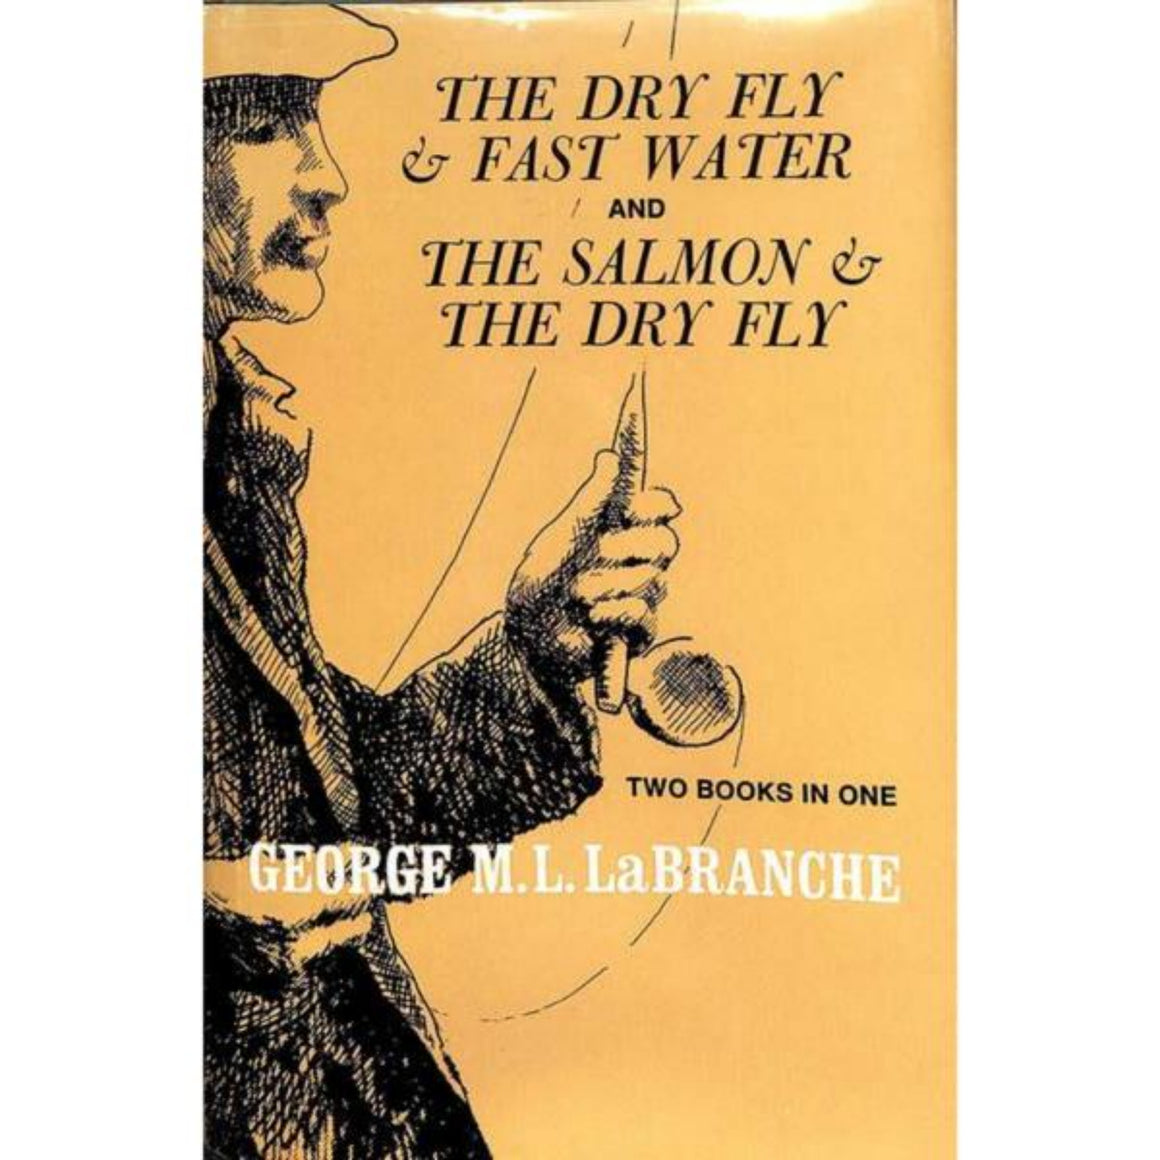 A&F Library 'The Dry Fly & Fast Water and The Salmon & The Dry Fly'